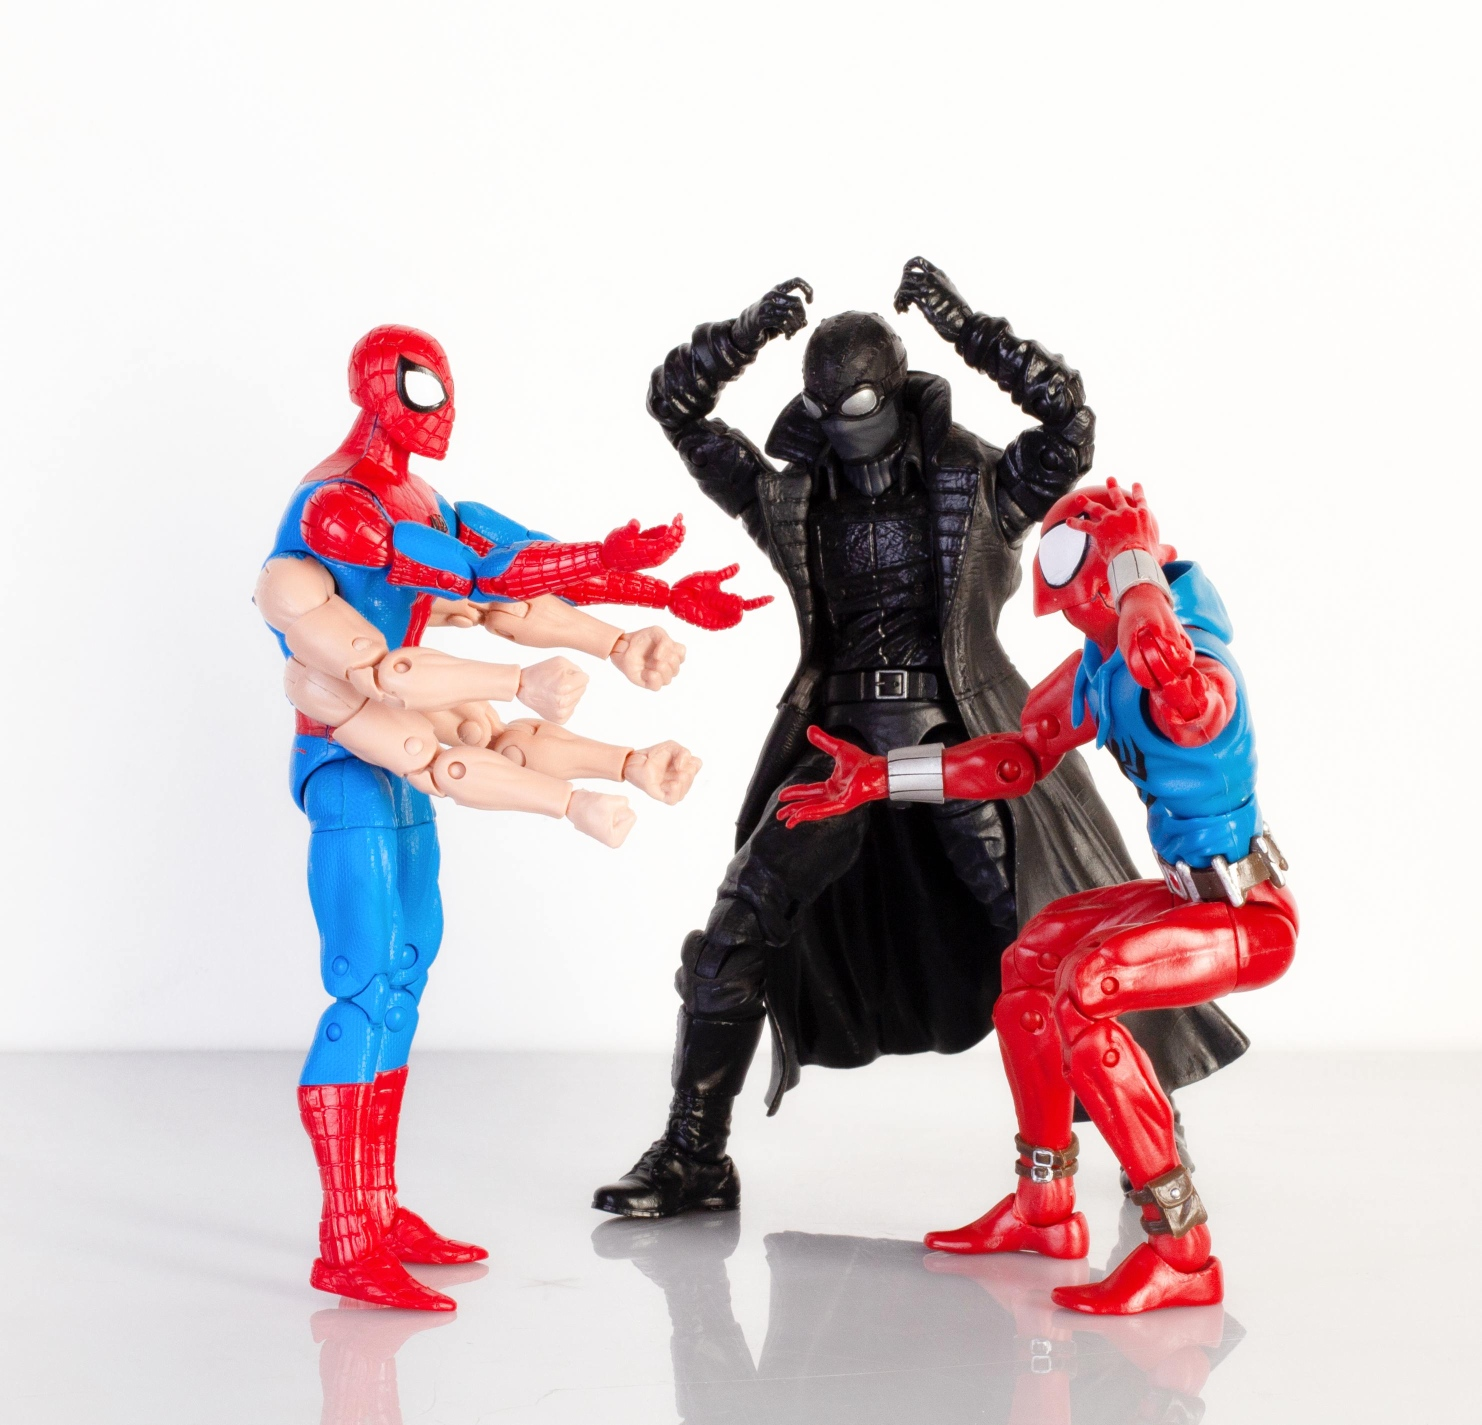 Marvel Legends Sixarms Spiderman vs. Marvel Legends Spiderman Nori i Marvel Legends Scarlet Spider